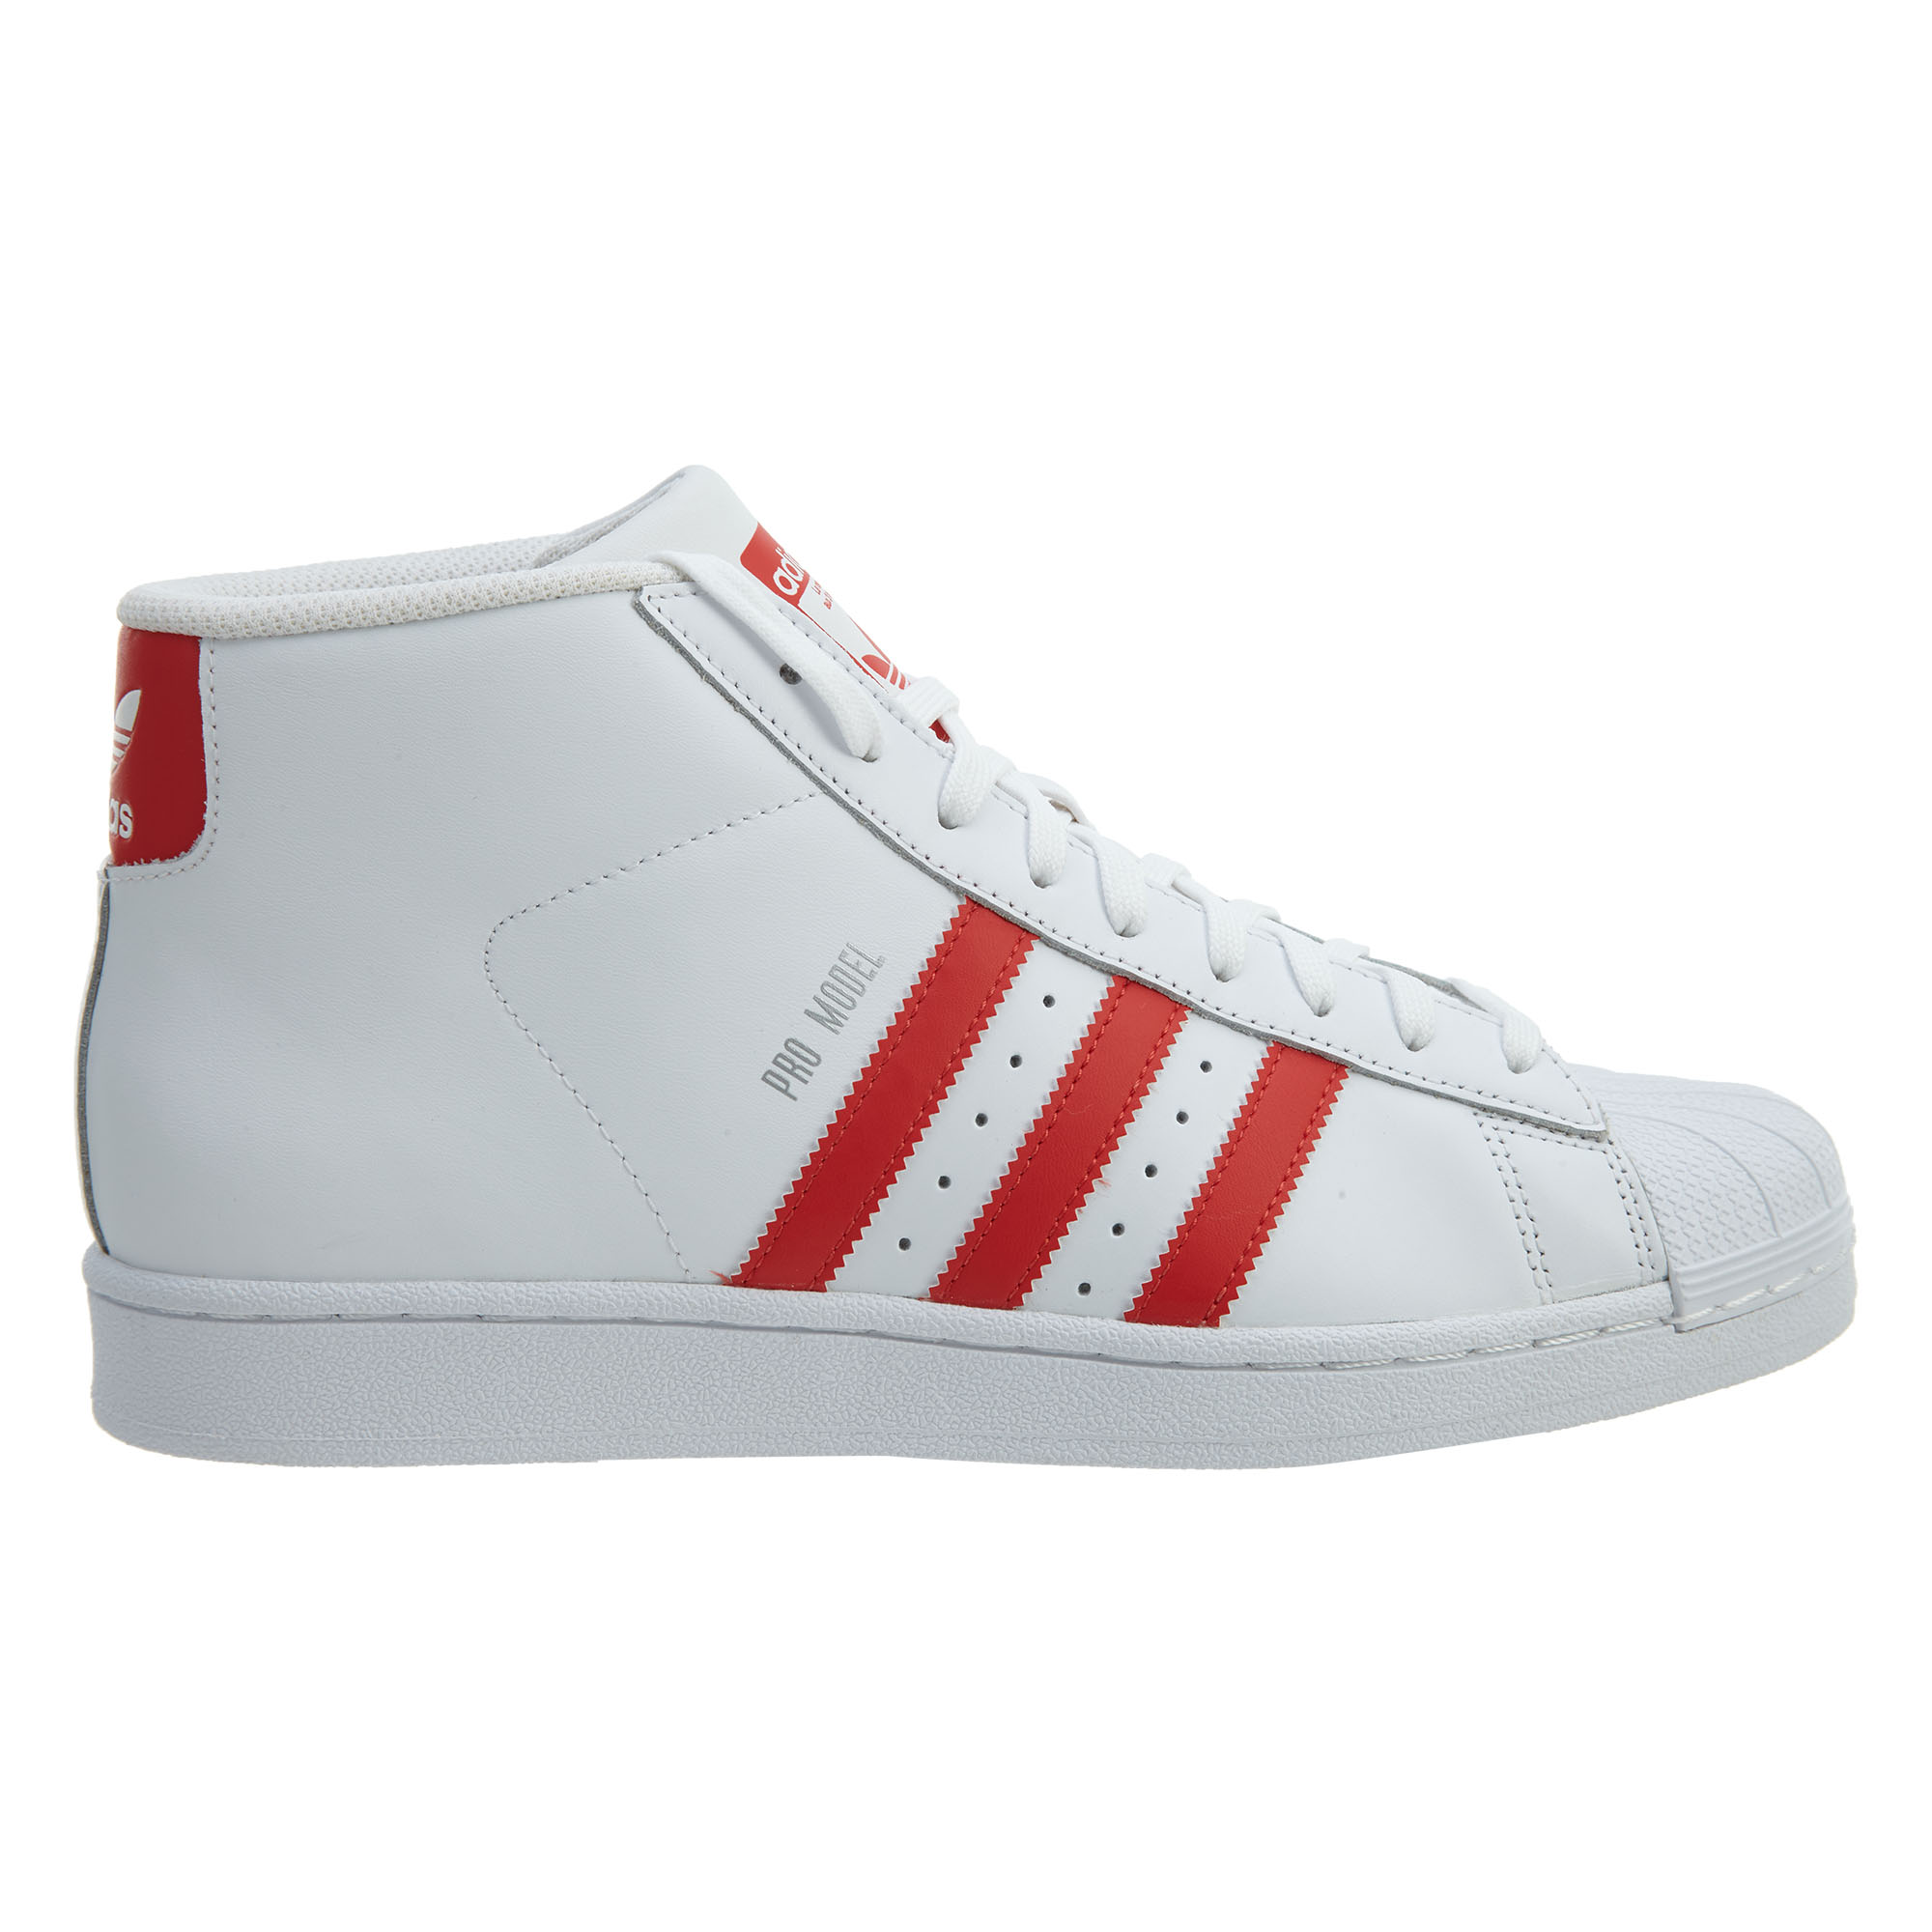 adidas Pro Model White Red - S75928